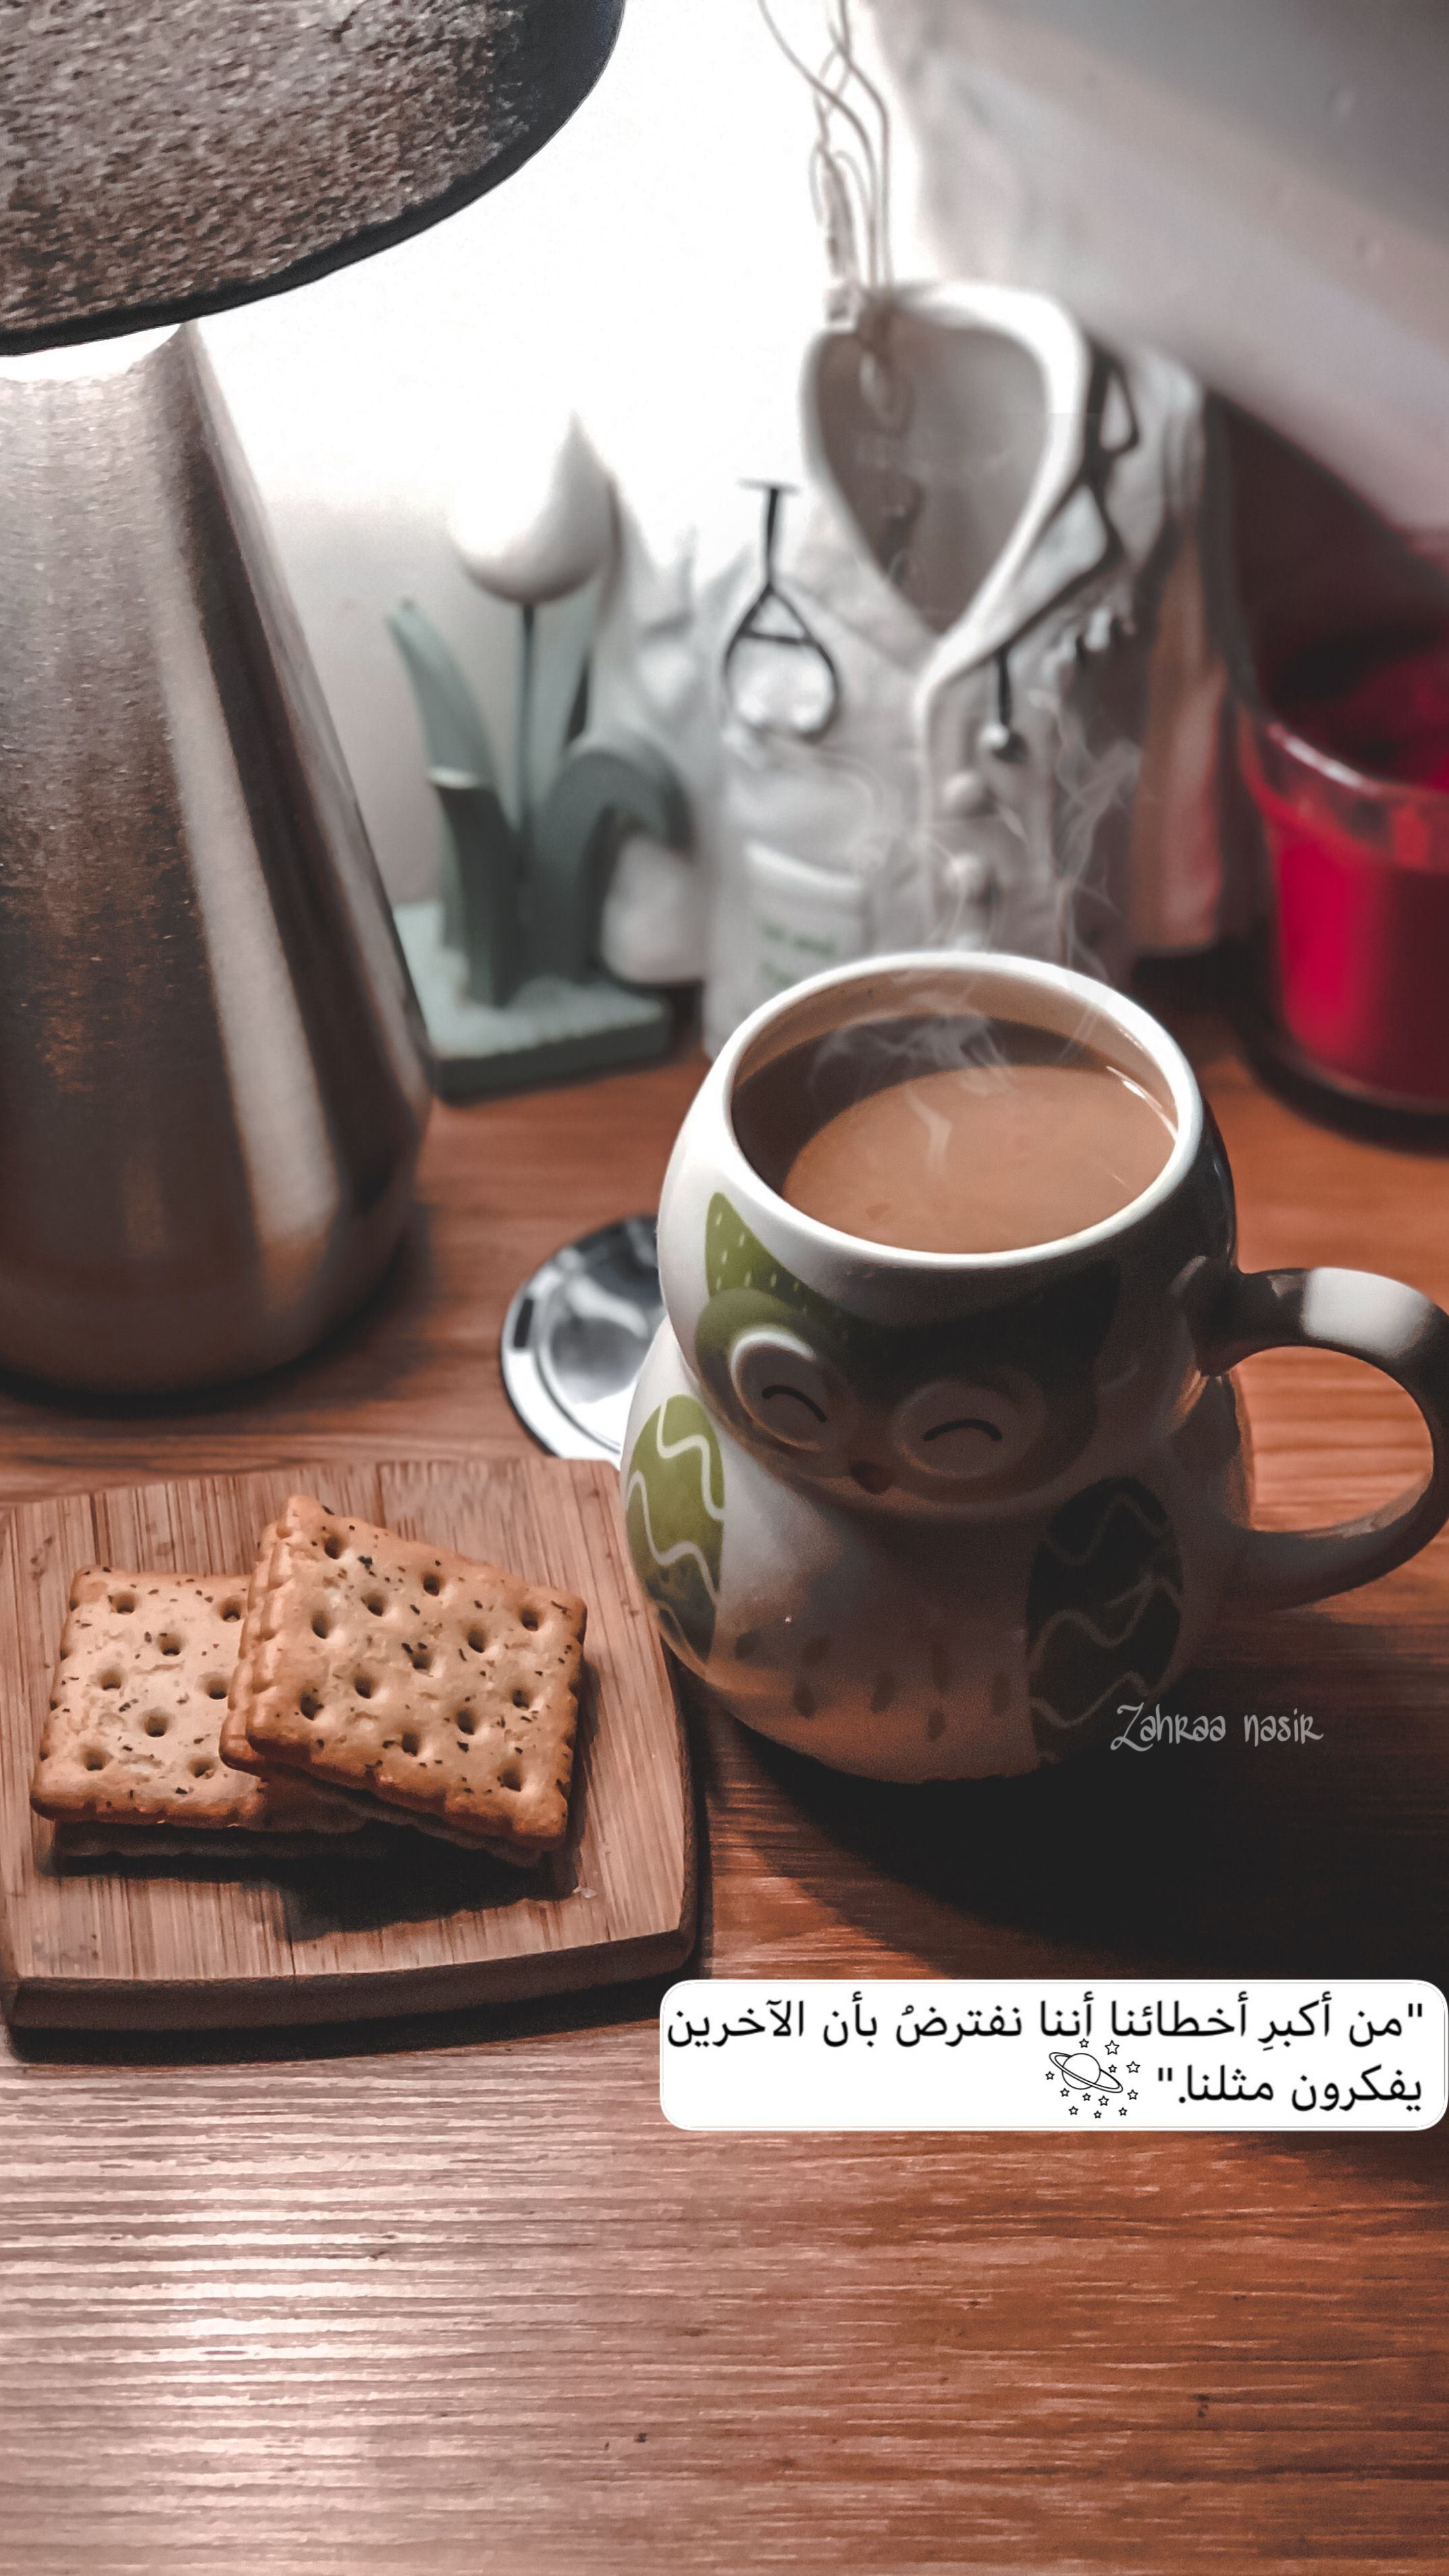 Pin By Zahraa Nasir On My Saves Coffee Art Cover Photo Quotes Glassware